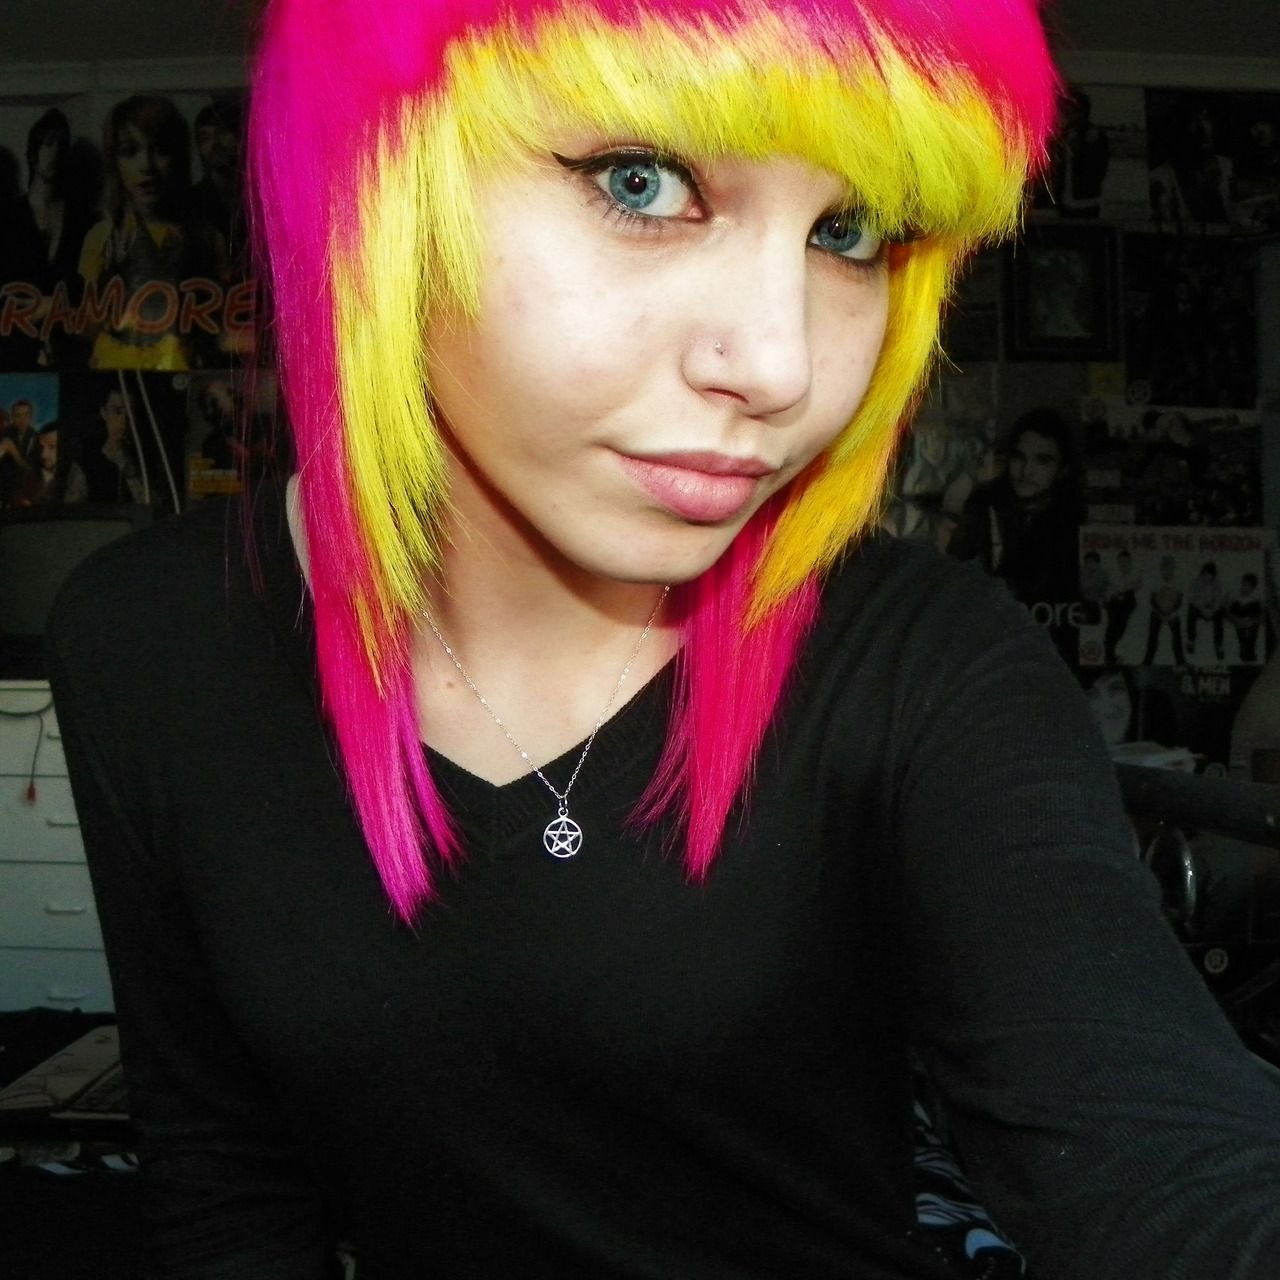 pink and yellow hair. This really pops! Her hair is beautiful and so is she! Wow!  ♥ I bet you wish you have hair like this - Enjoy with love from http://www.shop.embiotechsolutions.co.uk/AquaFresh-EM-Ceramics-Water-Butt-Treatment-250g-AquaFresh250.htm